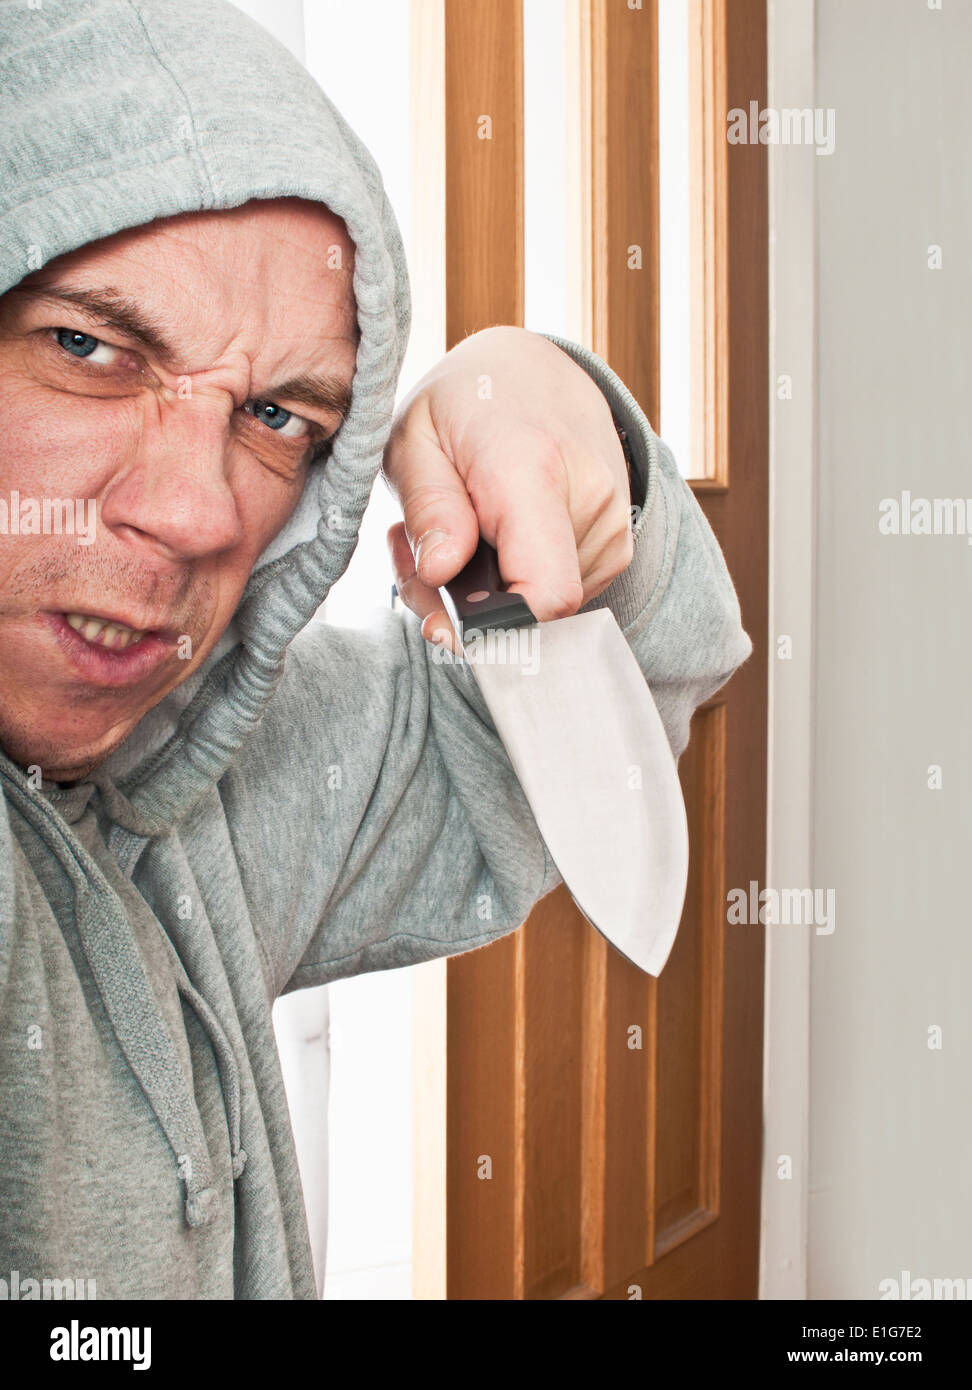 Violent man with a knife - Stock Image